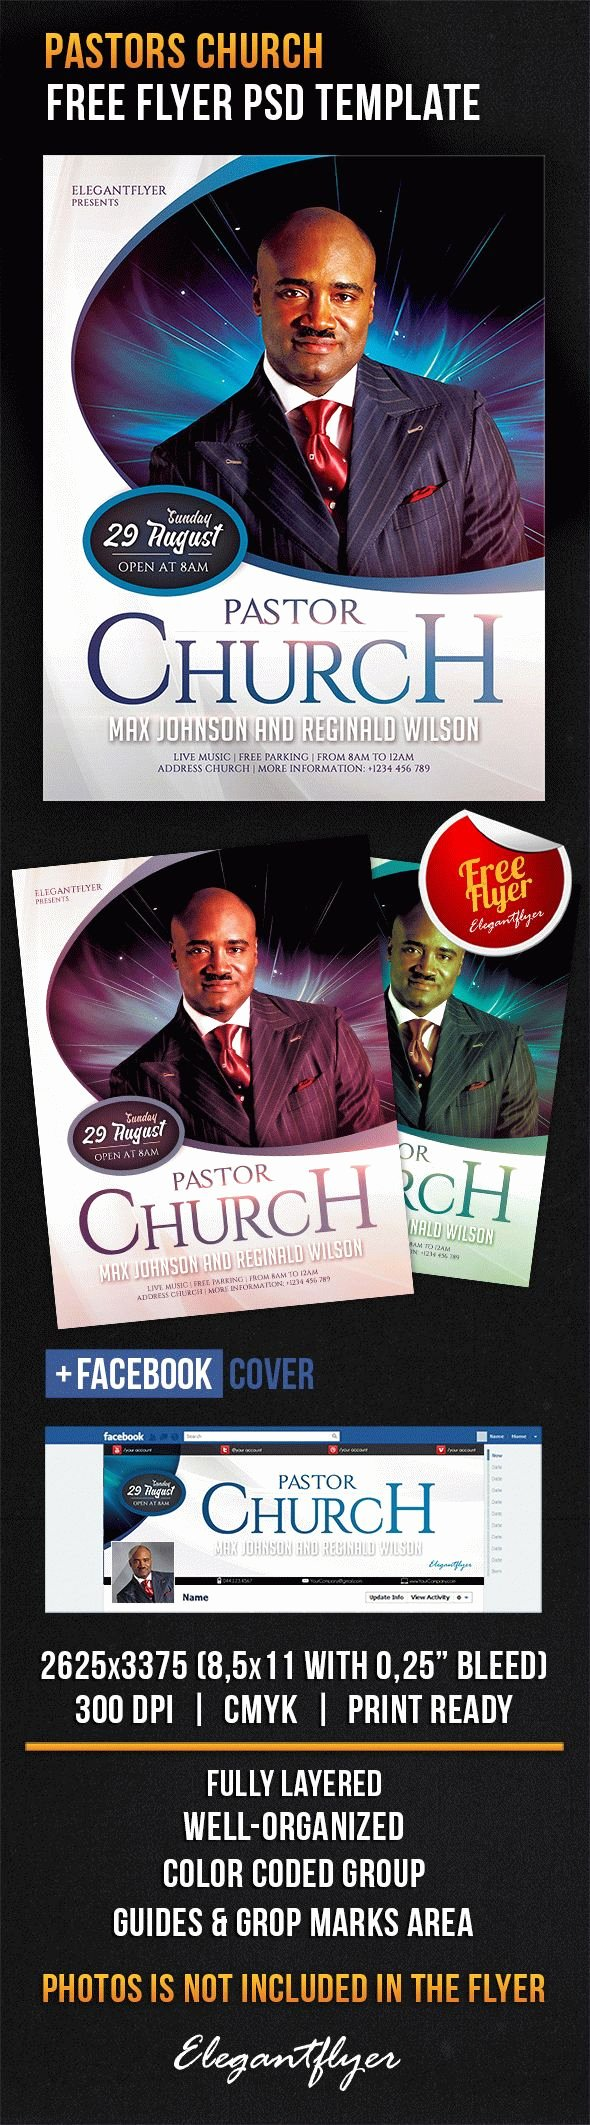 Free Download Flyer Template Pastors Church